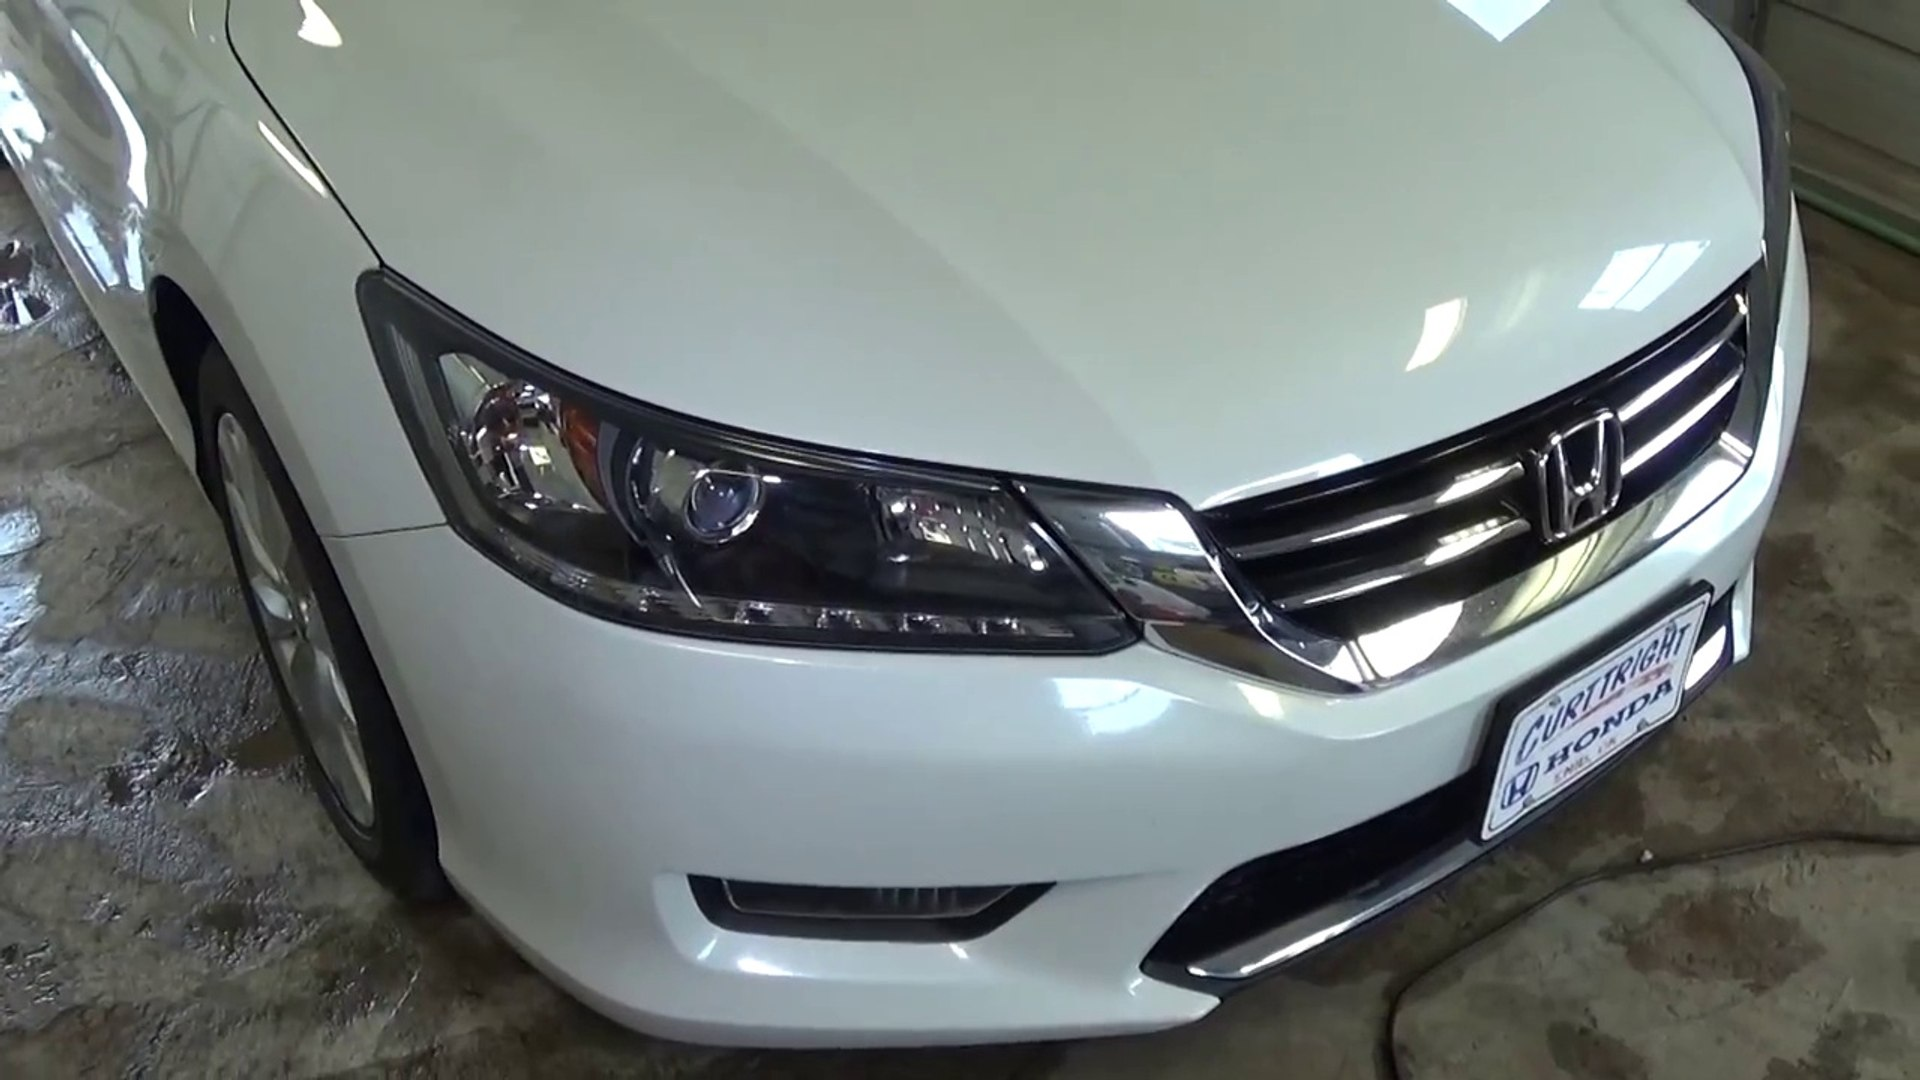 Honda Accord Headlight Bulb And Front Turn Signal Bulb Replacement 2013 2014 2015 2016